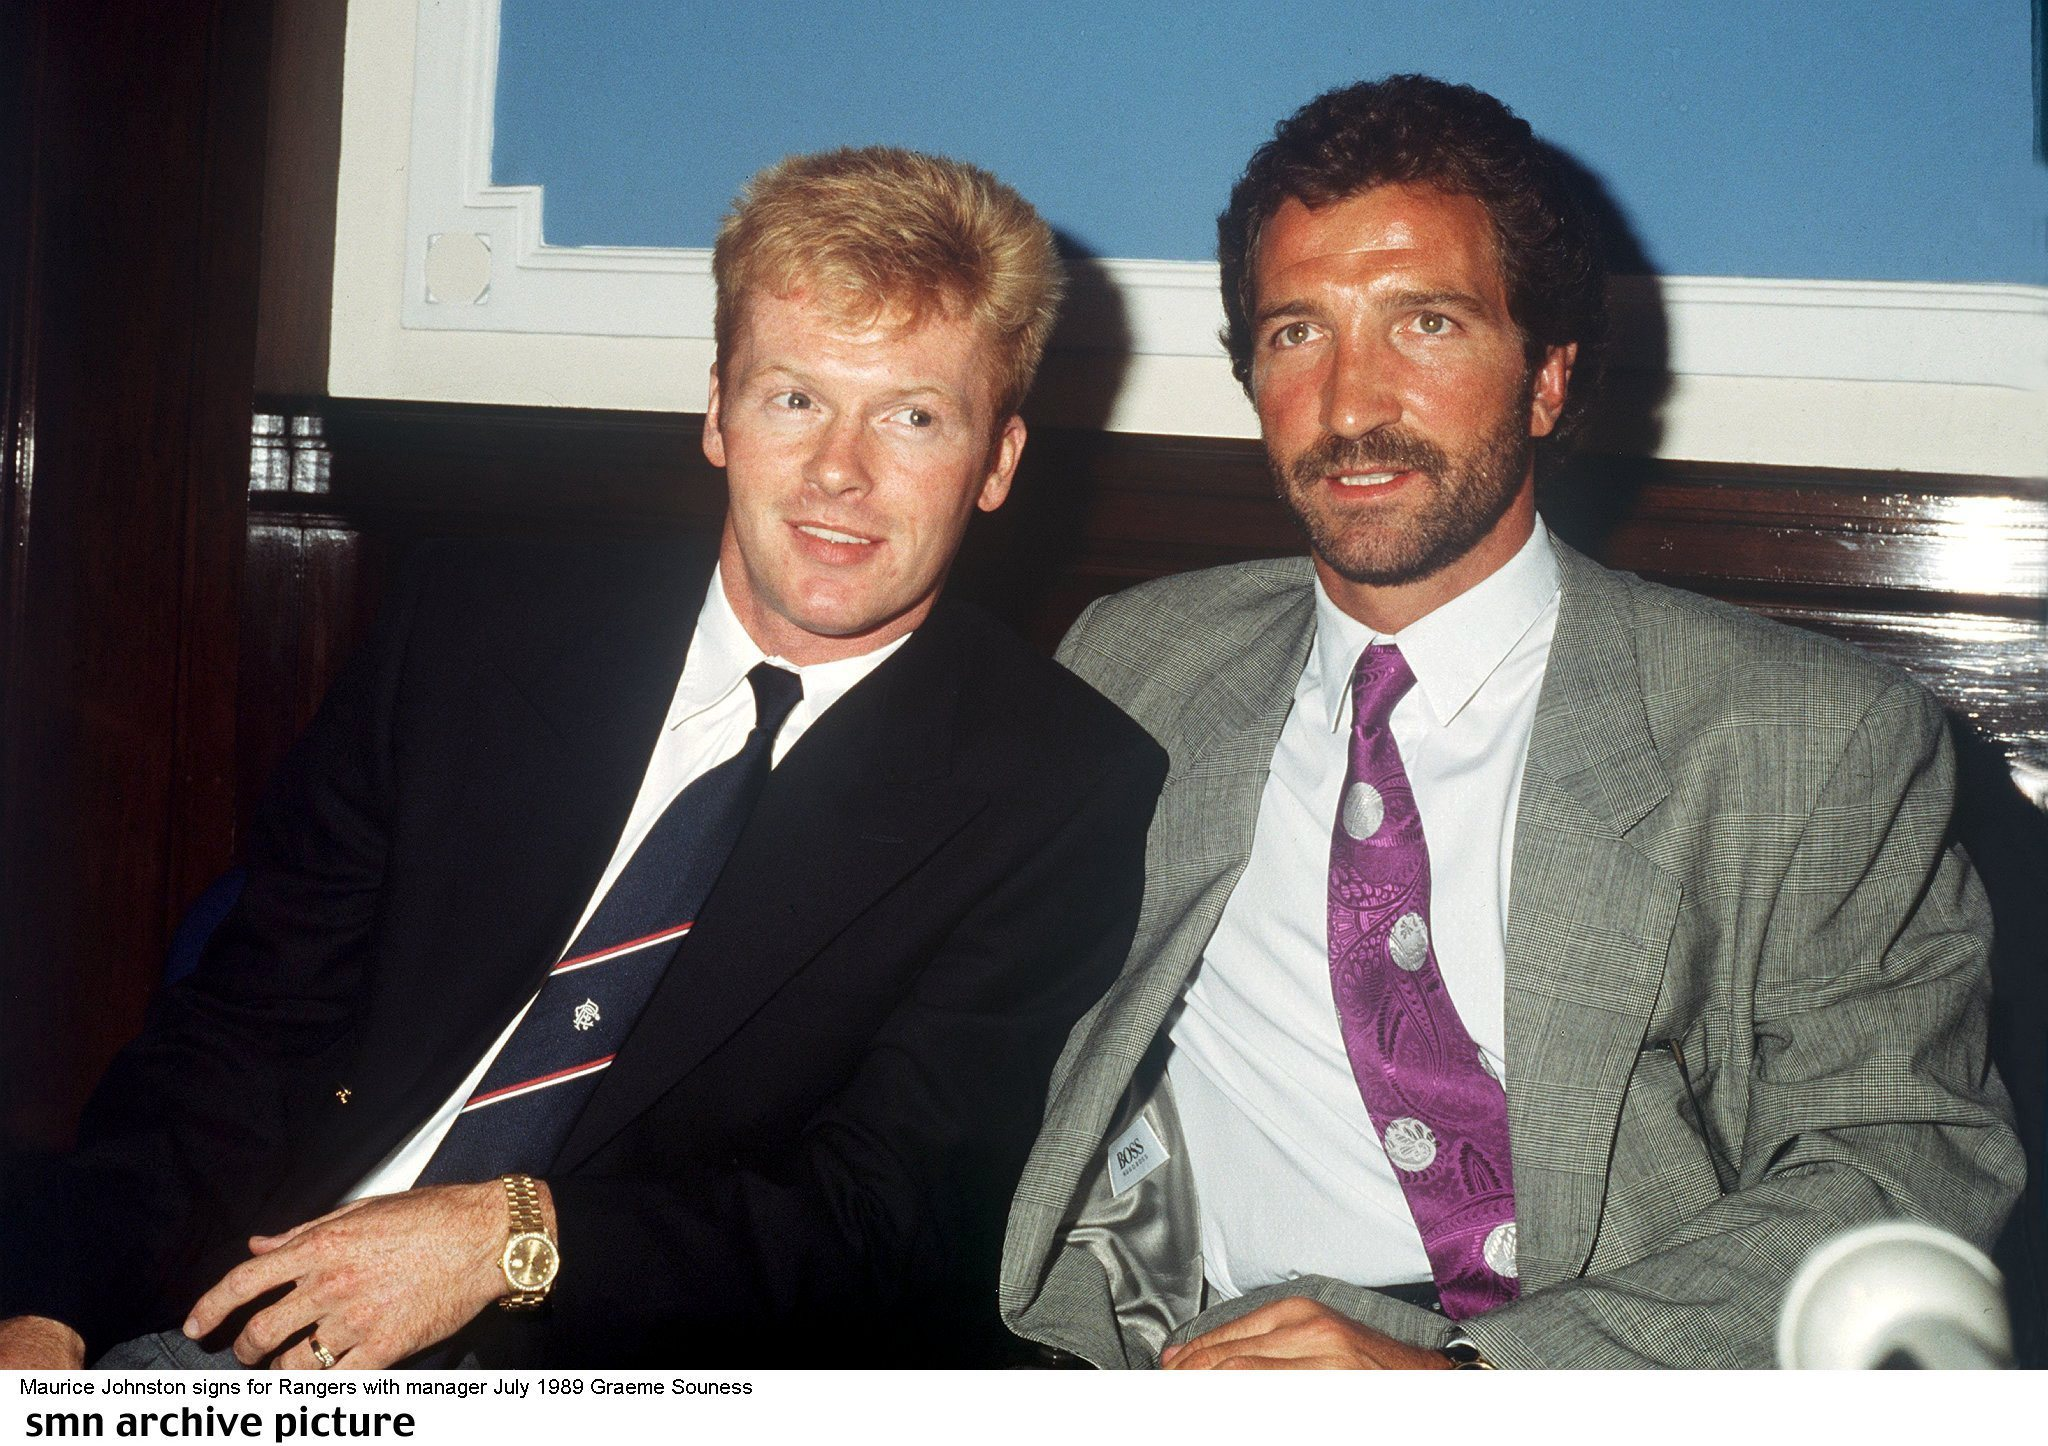 Ian Durrant reflects on Mo Johnston's move to Rangers 30 years on